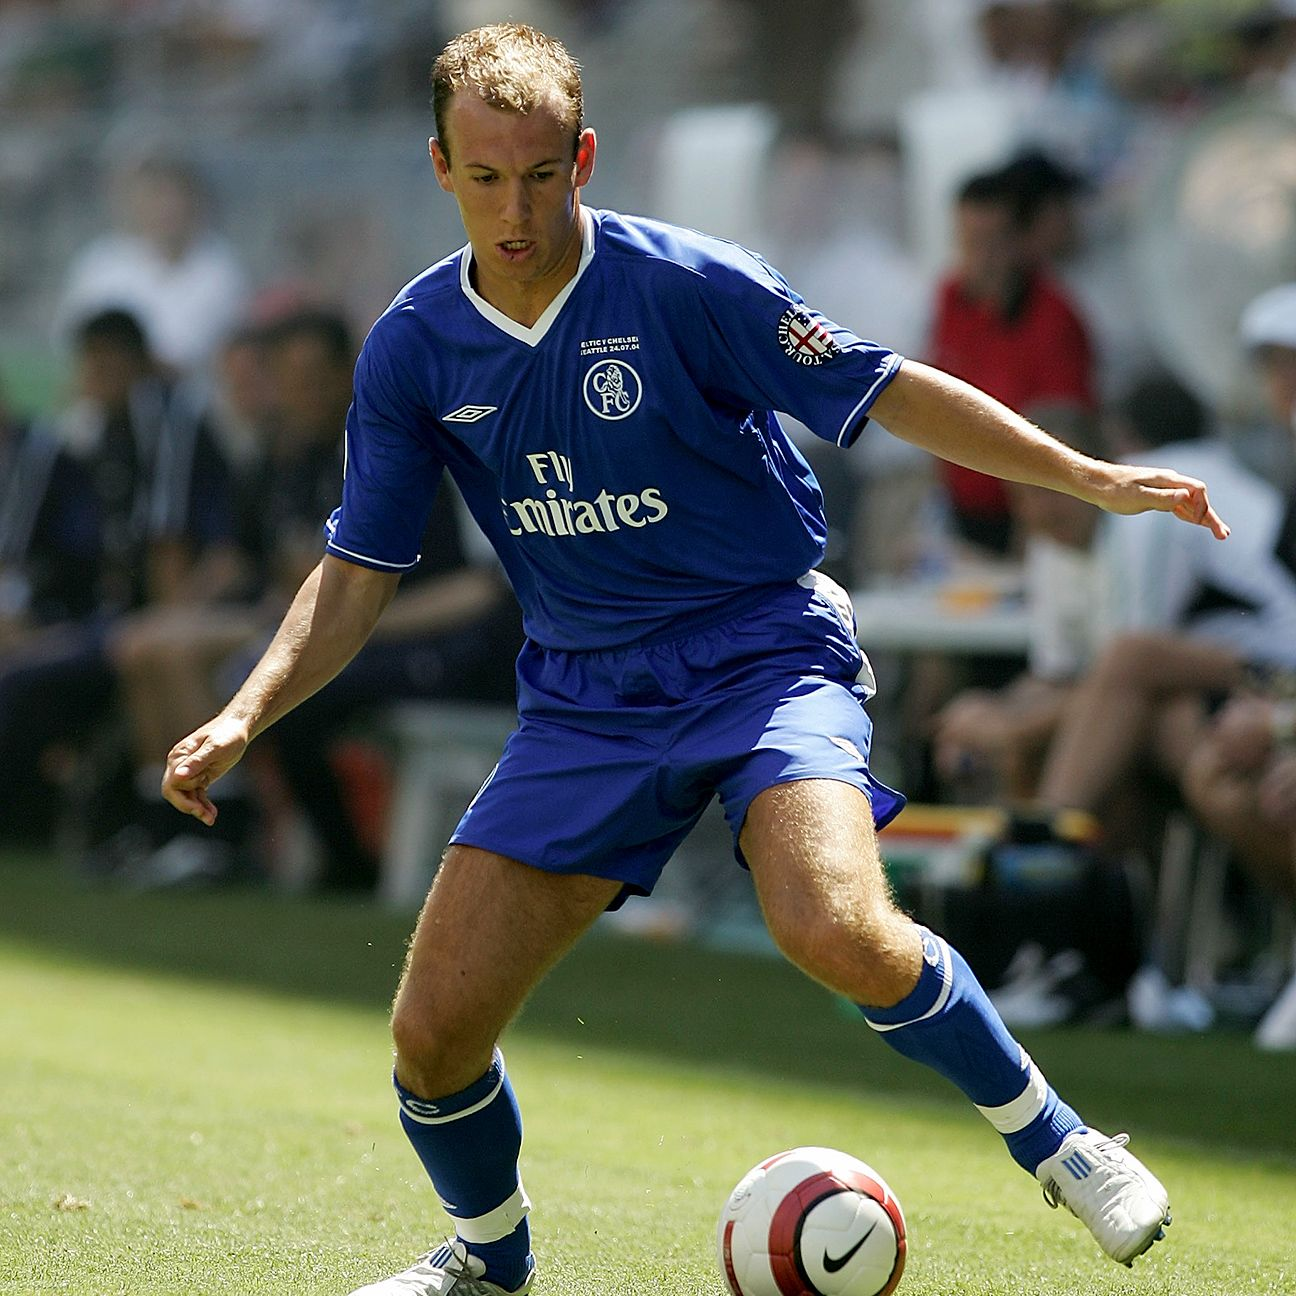 Arjen Robben nearly signed with Manchester United before arriving to Chelsea during the summer of 2004.